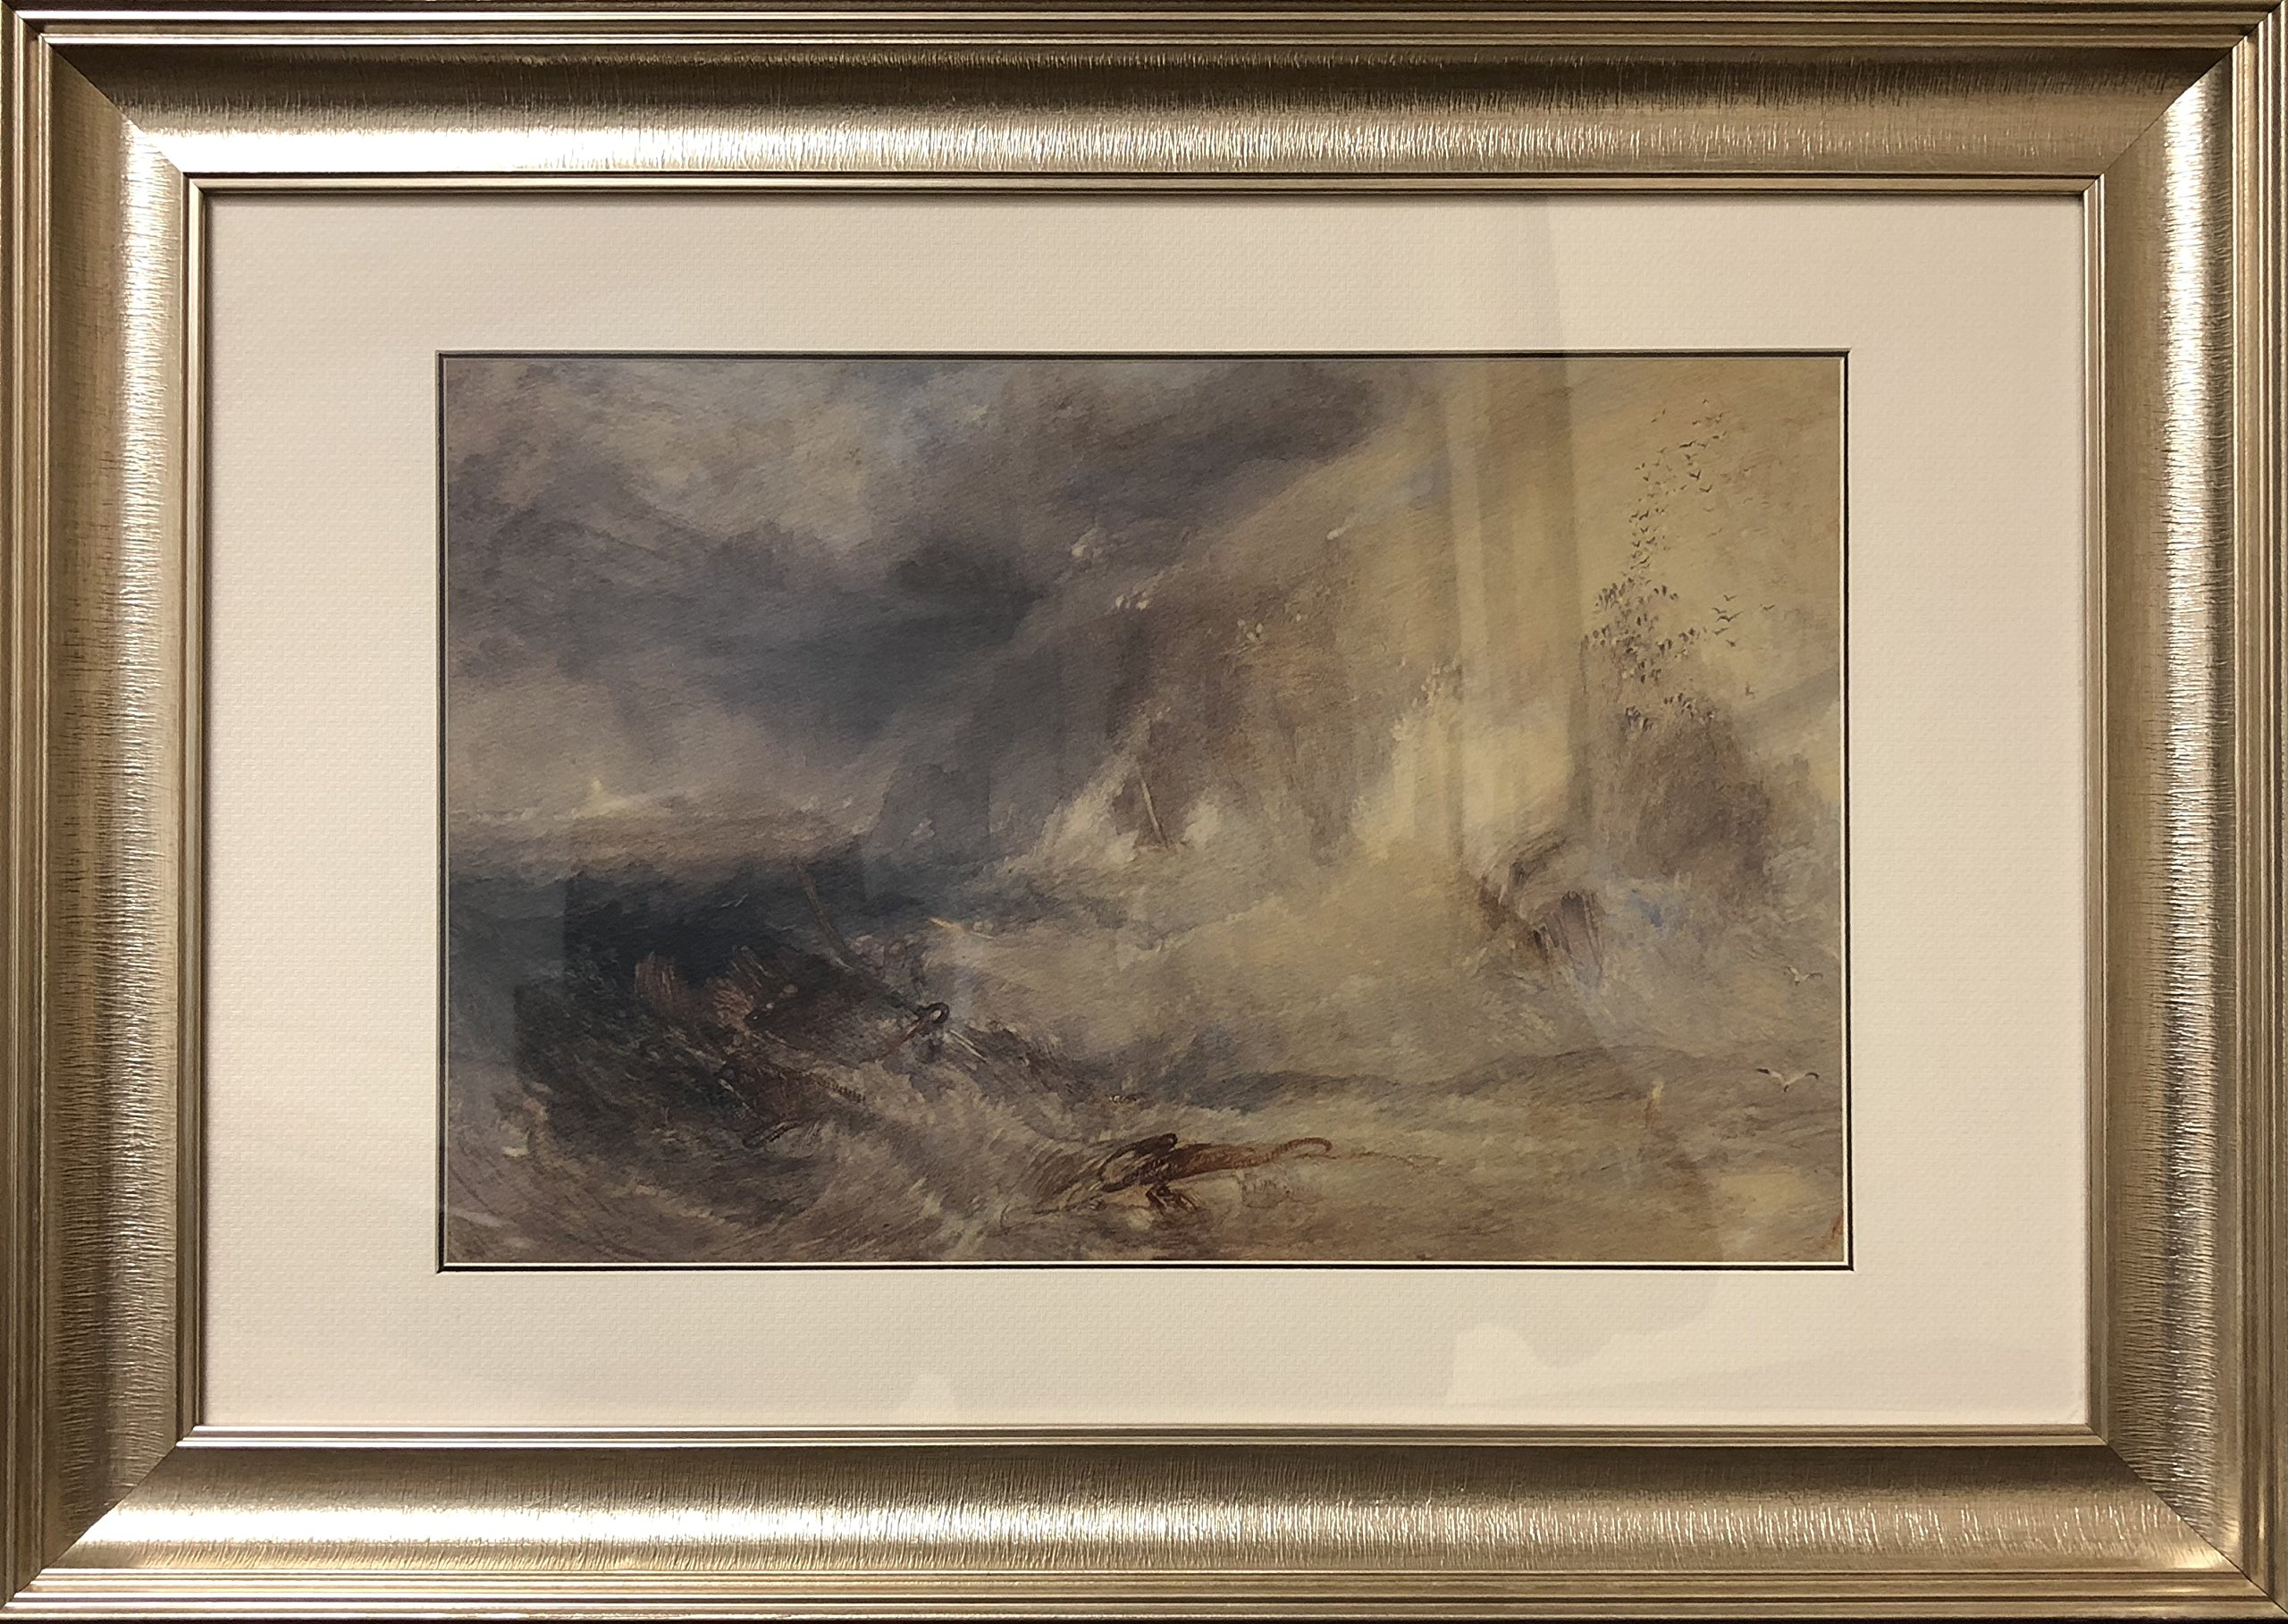 """Long Ship's Lighthouse, Land's End by J. M. W, Oil Painting Print on Museum Quality Paper, with Victorian Gold Frame, Size 20"""" x 27"""", Framed Painting Ready to Hang on Wall"""